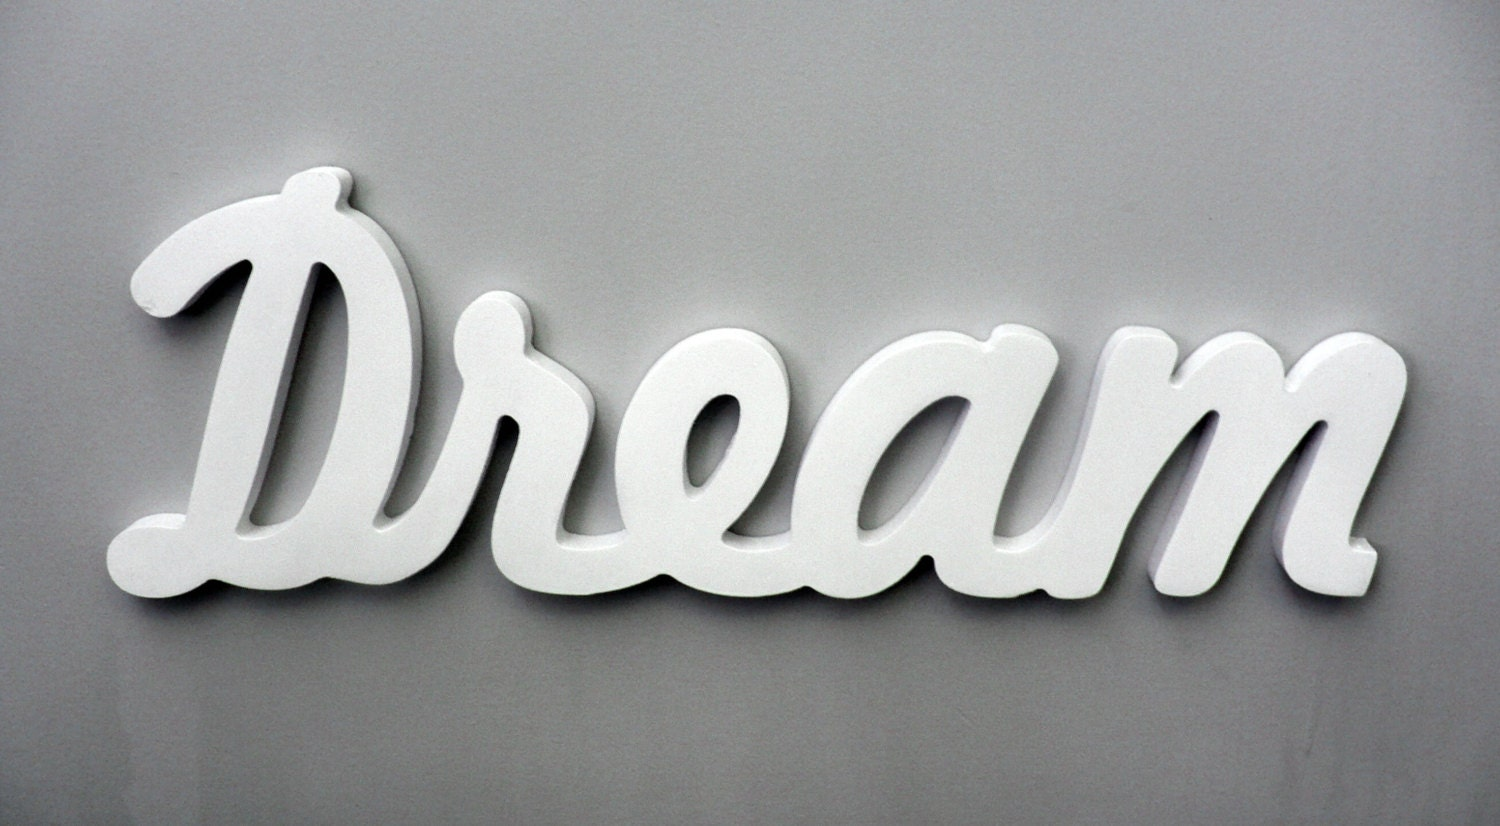 Wooden Words Wall Art : Wooden inspirational wall word dream decor